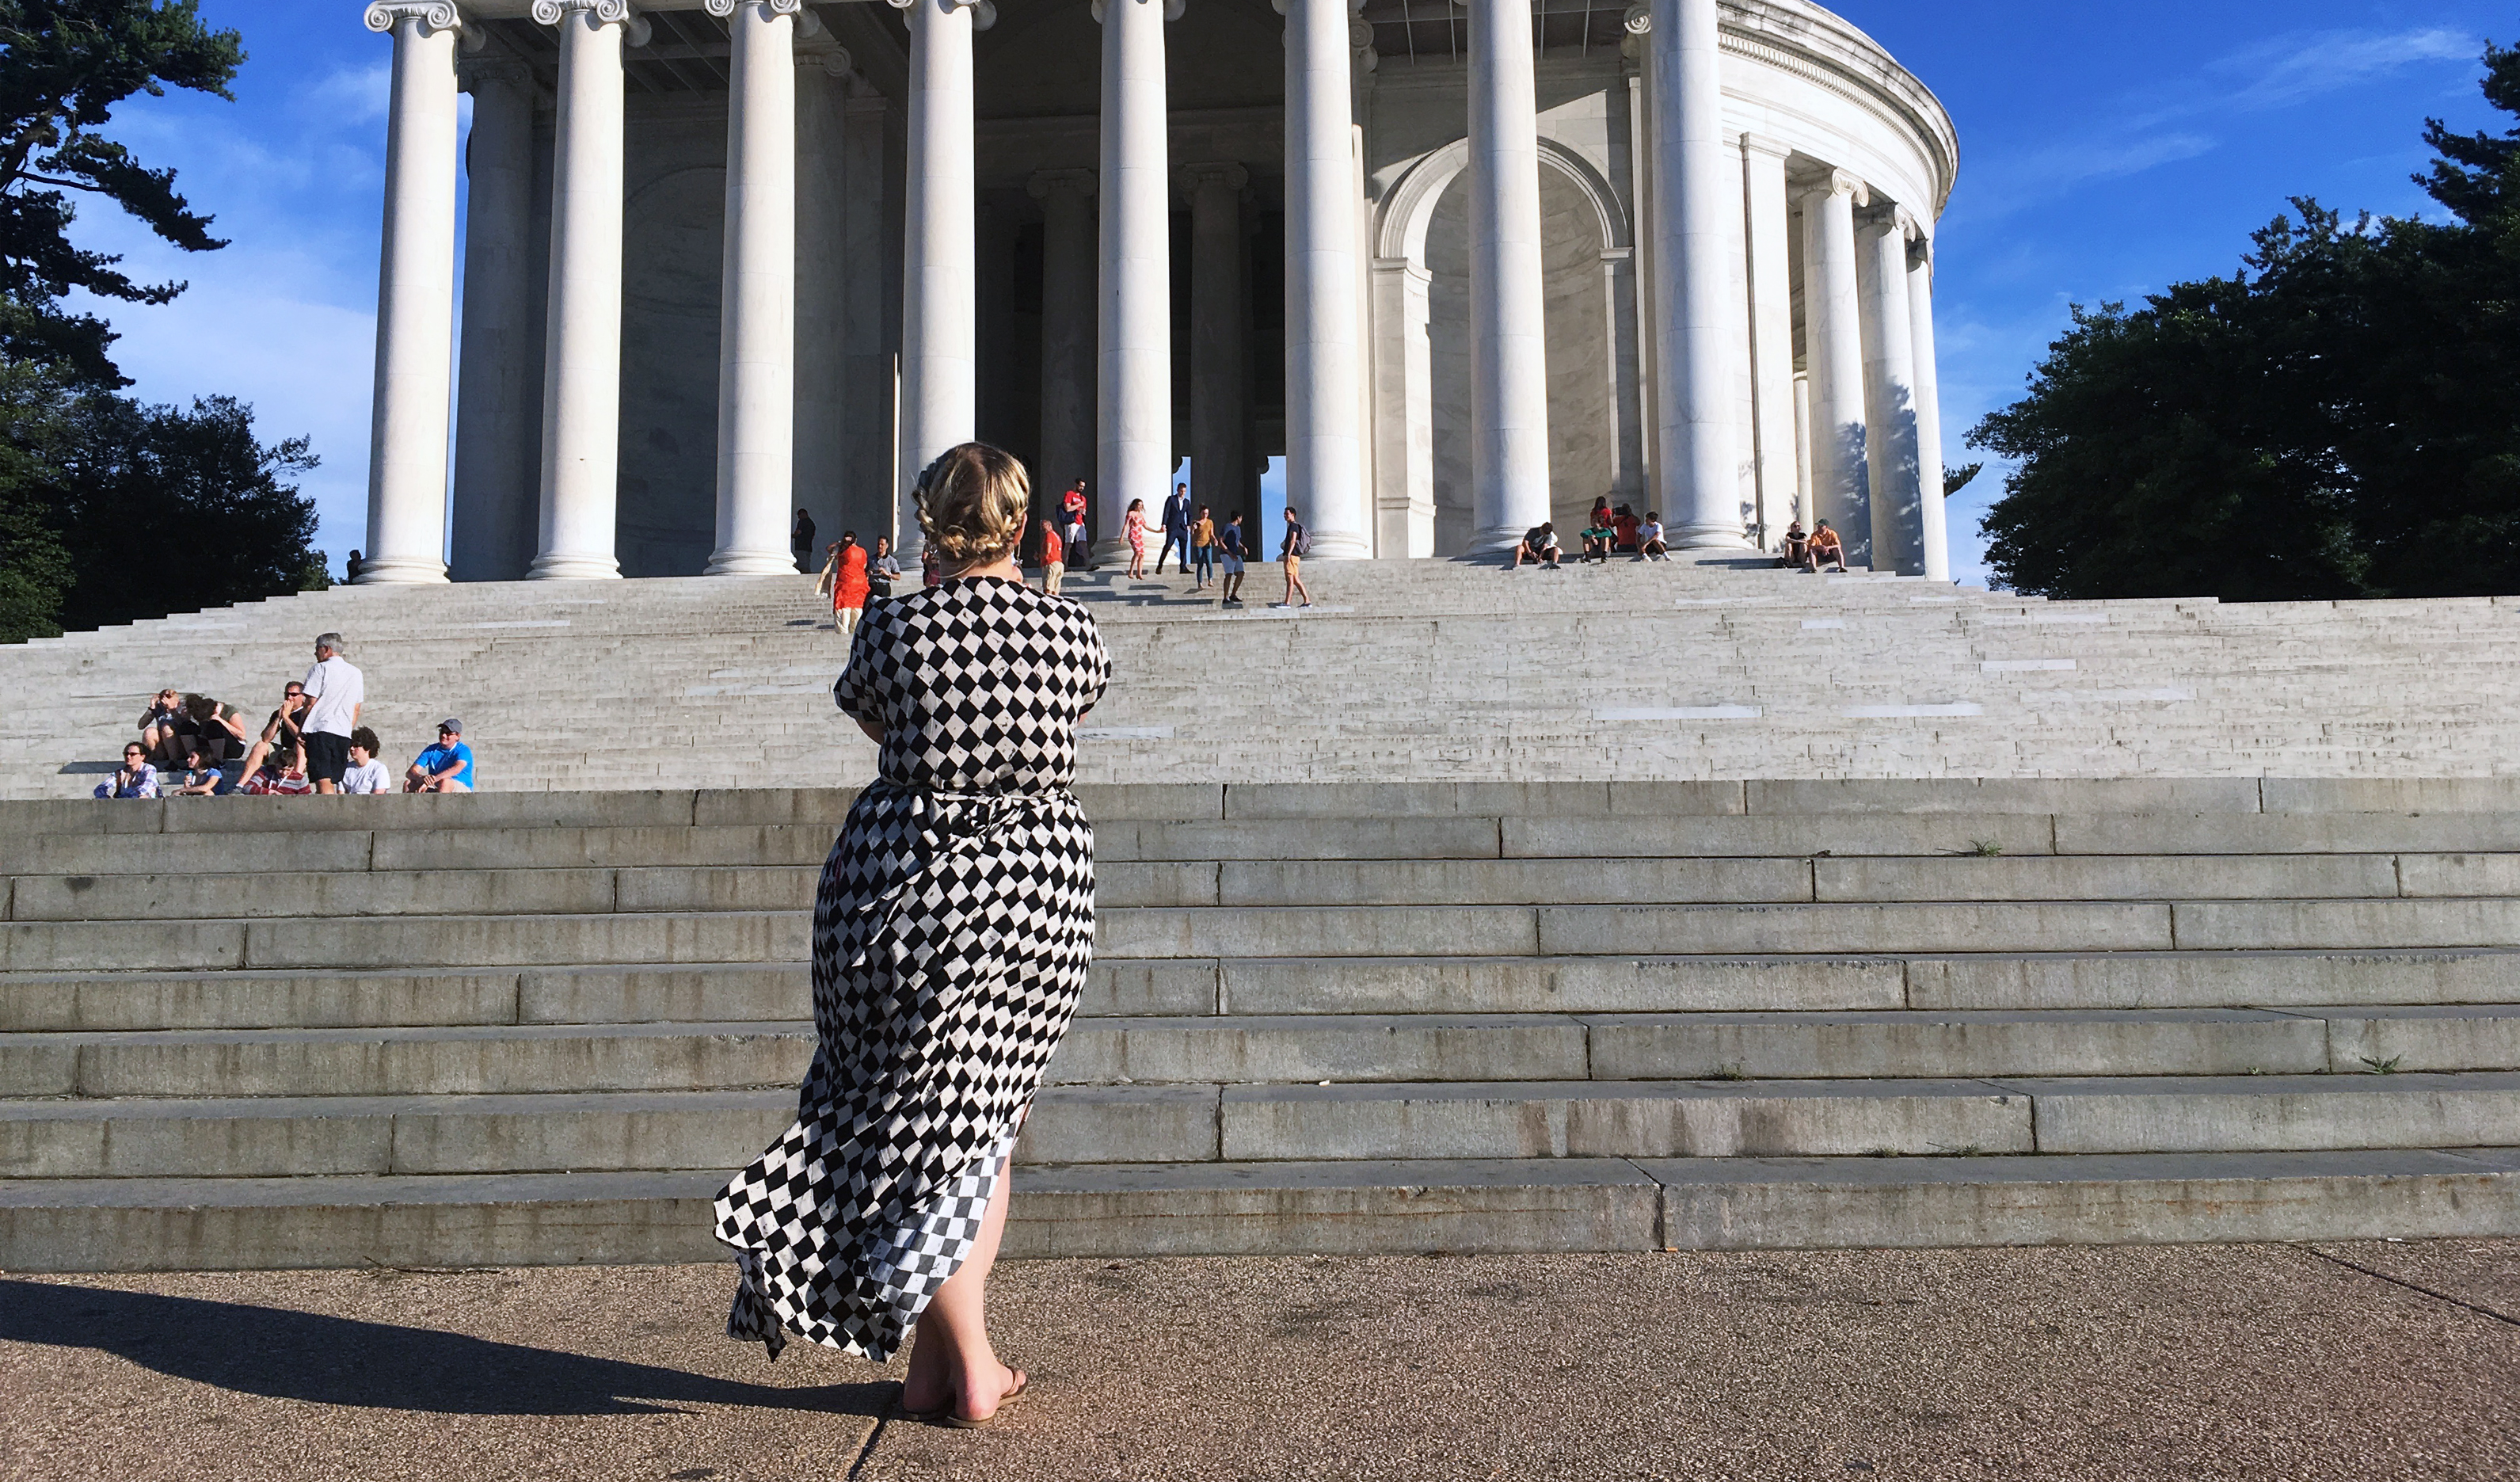 Charlie Caftan Au Jefferson Memorial